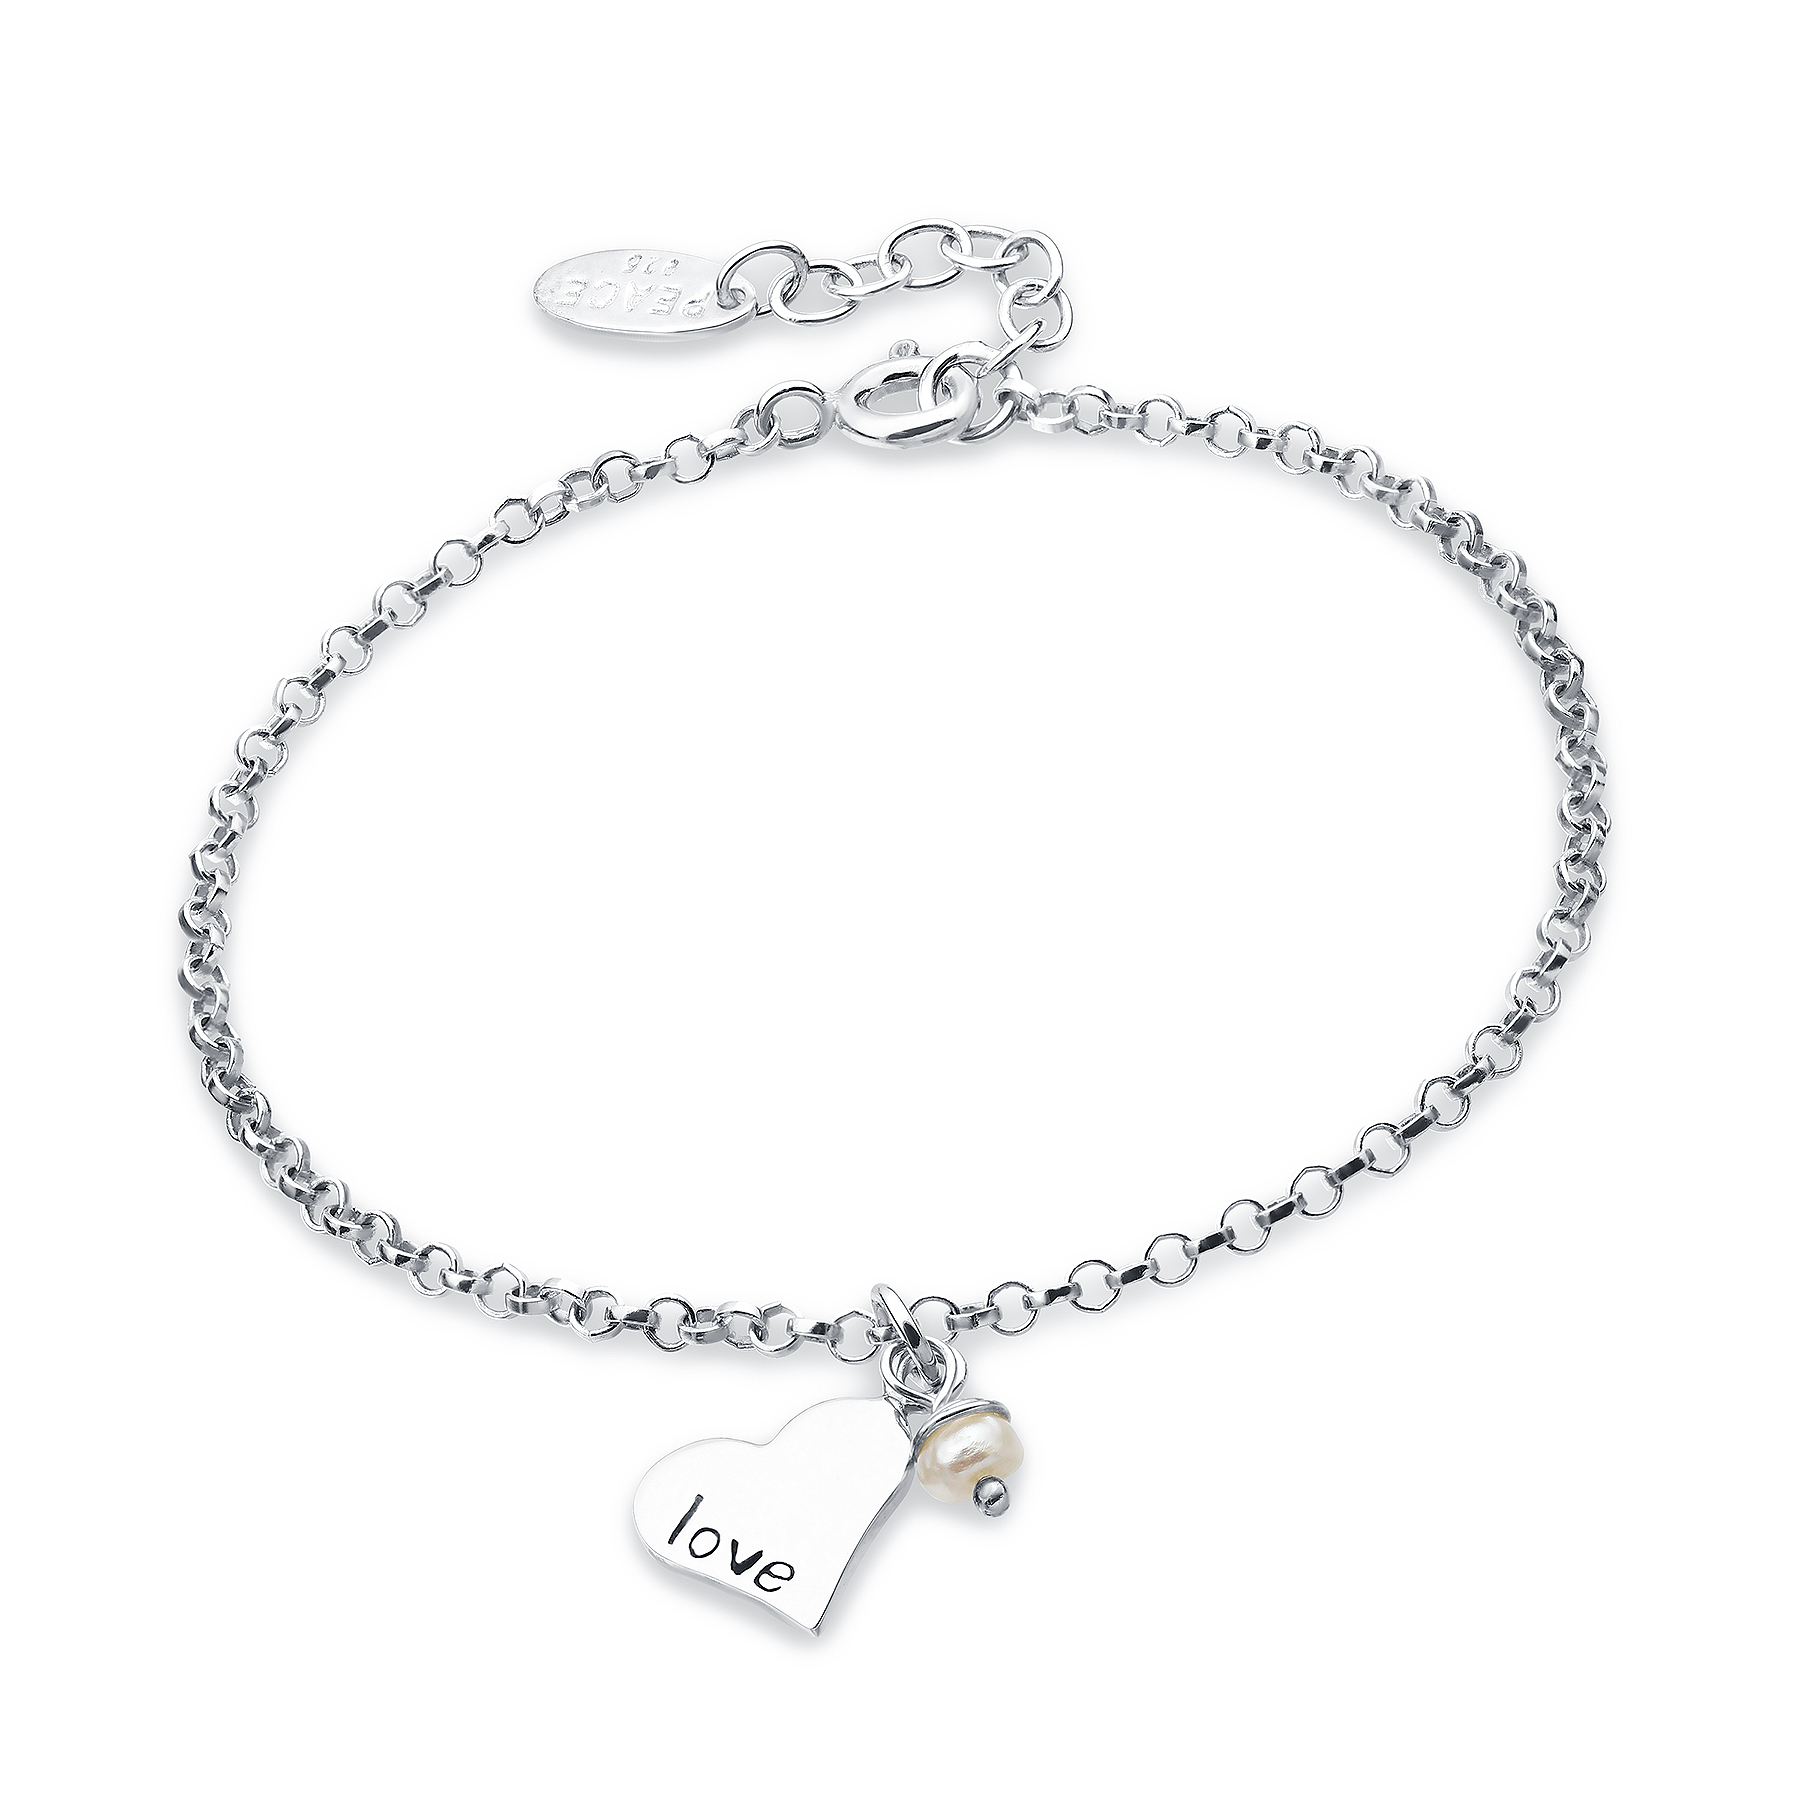 706-12196 - 925 Sterling Silver Heart And Love Bracelet Beaded With Fresh Water Pearls